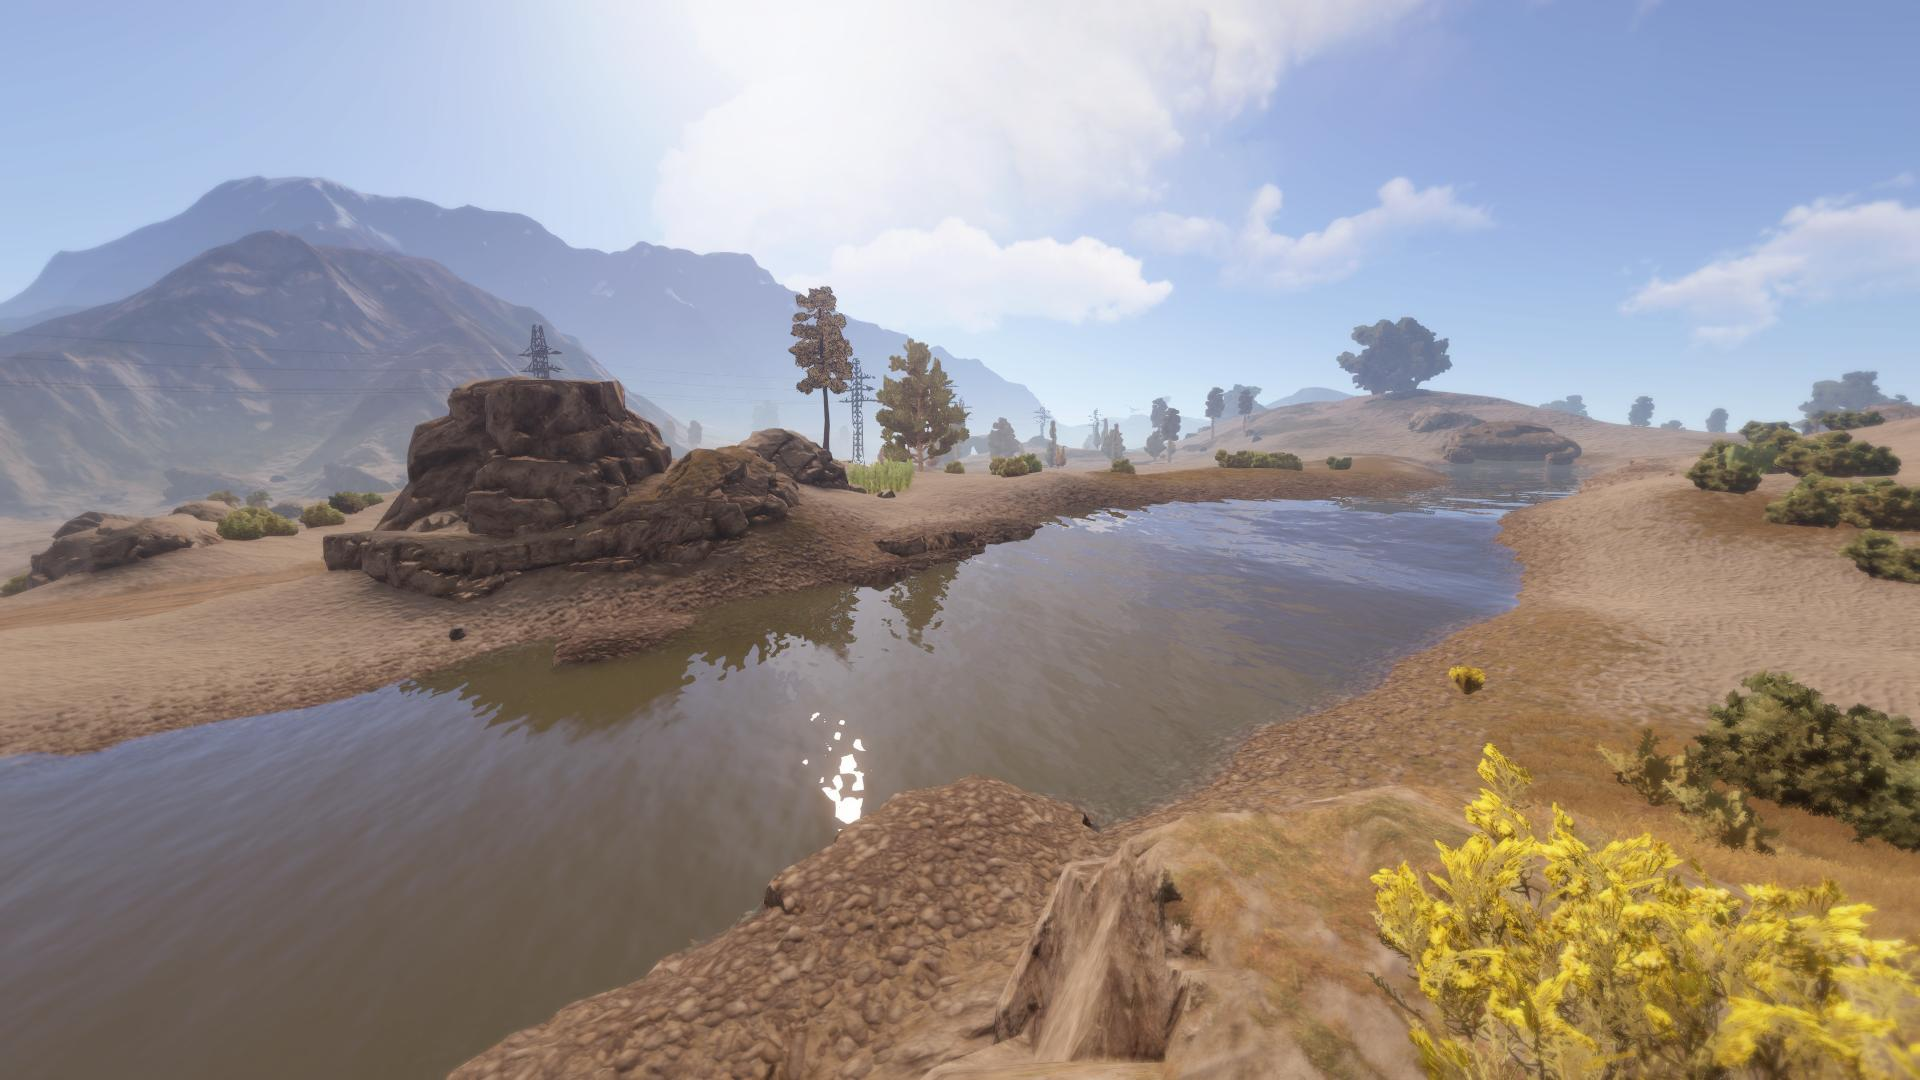 Fluss durch trockene Wüste in Rust